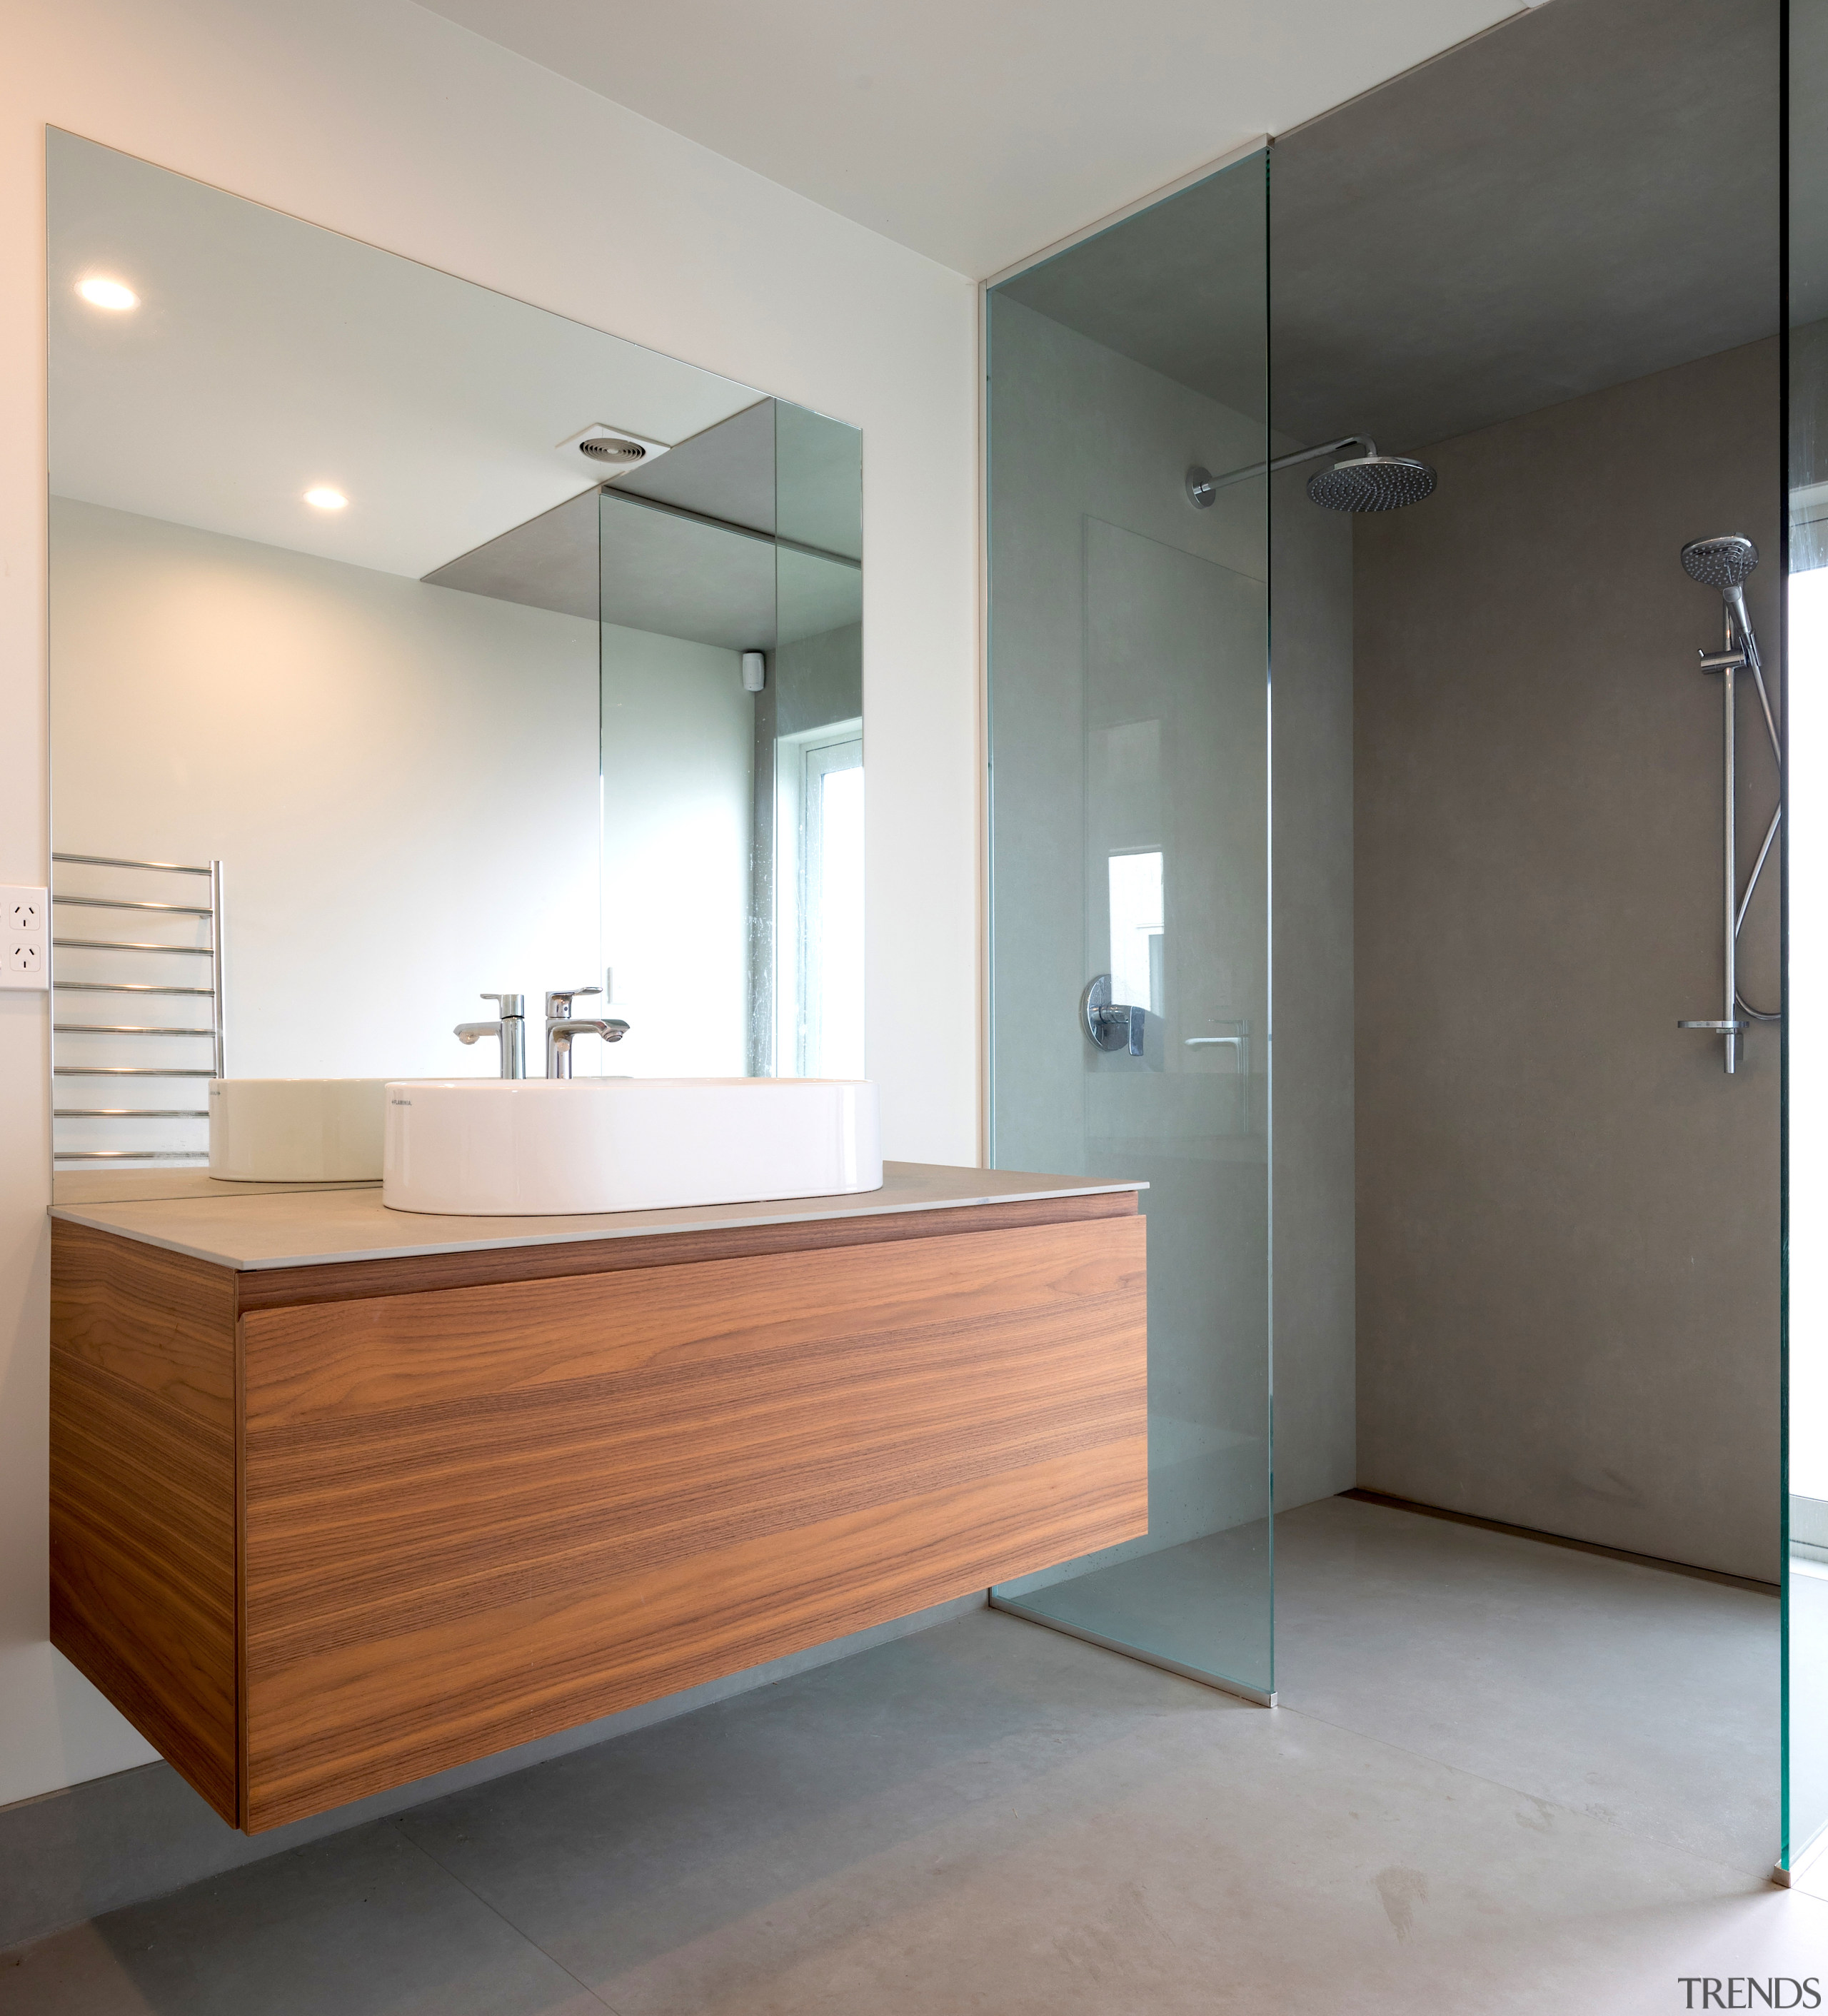 With clever drainage systems in place the overall architecture, bathroom, bathroom accessory, bathroom cabinet, bathtub, building, cabinetry, ceiling, daylighting, floor, flooring, furniture, glass, hardwood, home, house, interior design, material property, plumbing fixture, property, real estate, room, sink, tap, tile, wall, wood, gray